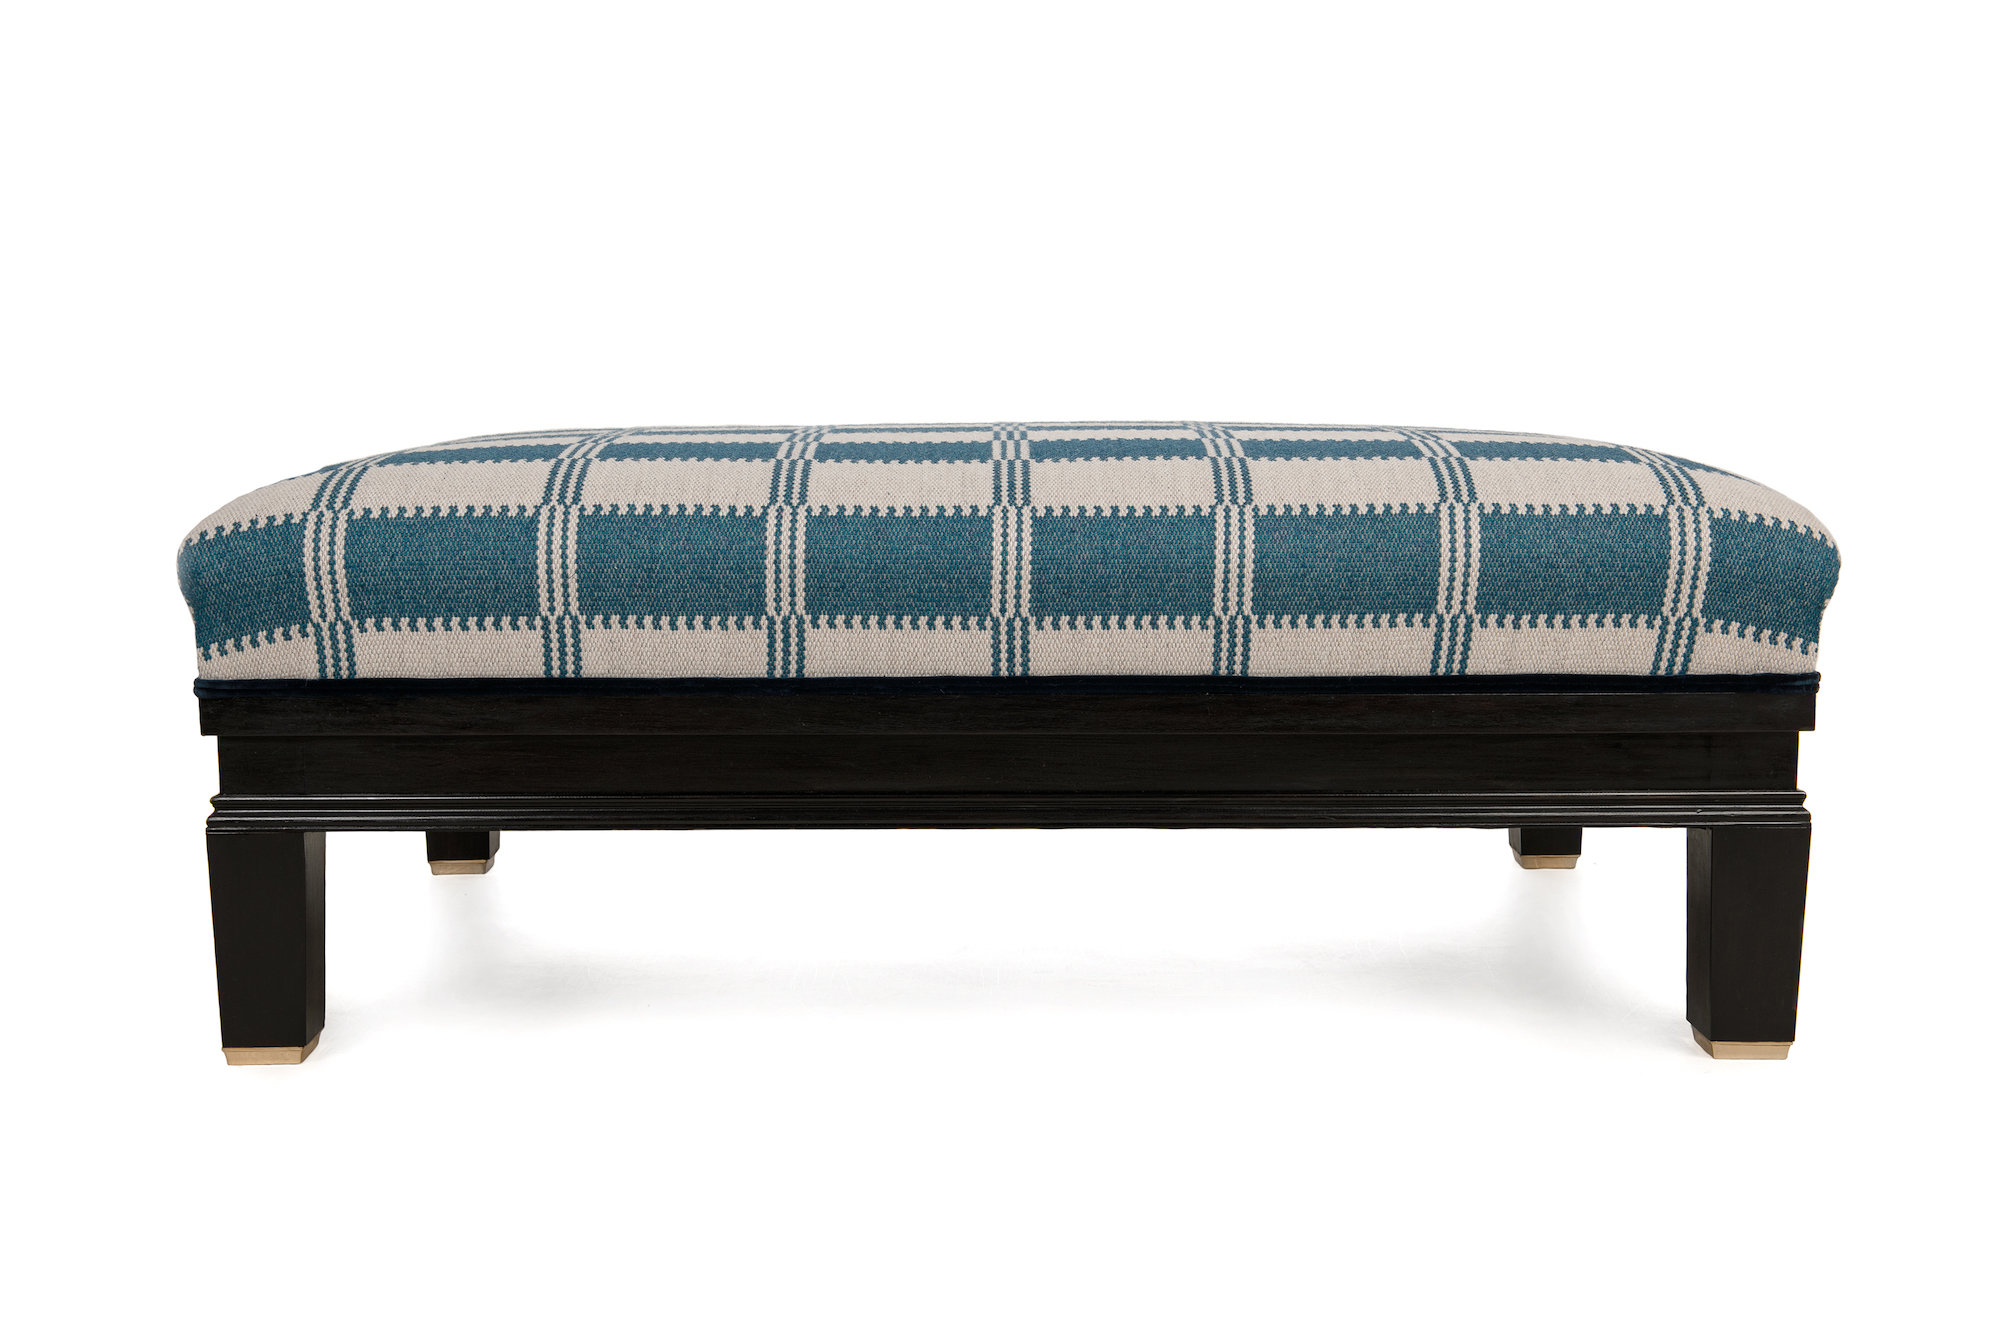 Black Polished Show-wood Footstool with Brass Embellishment